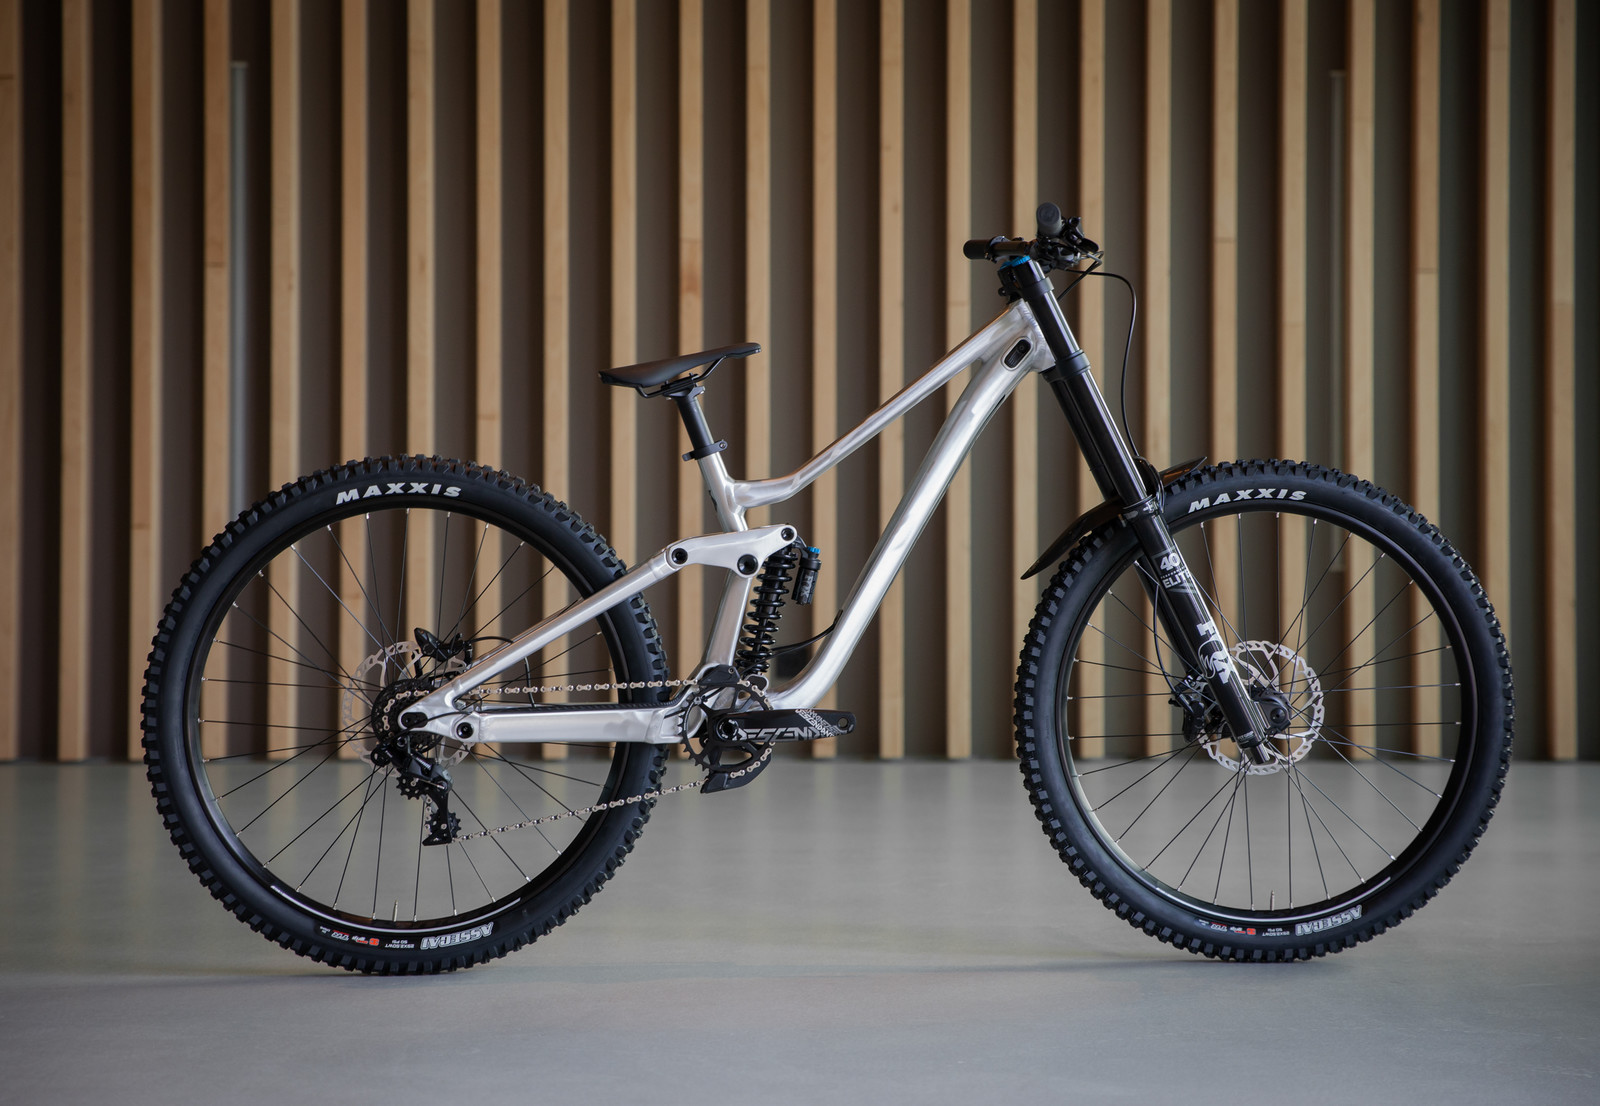 Introducing the All-New SCOTT Gambler Alloy Downhill Bike